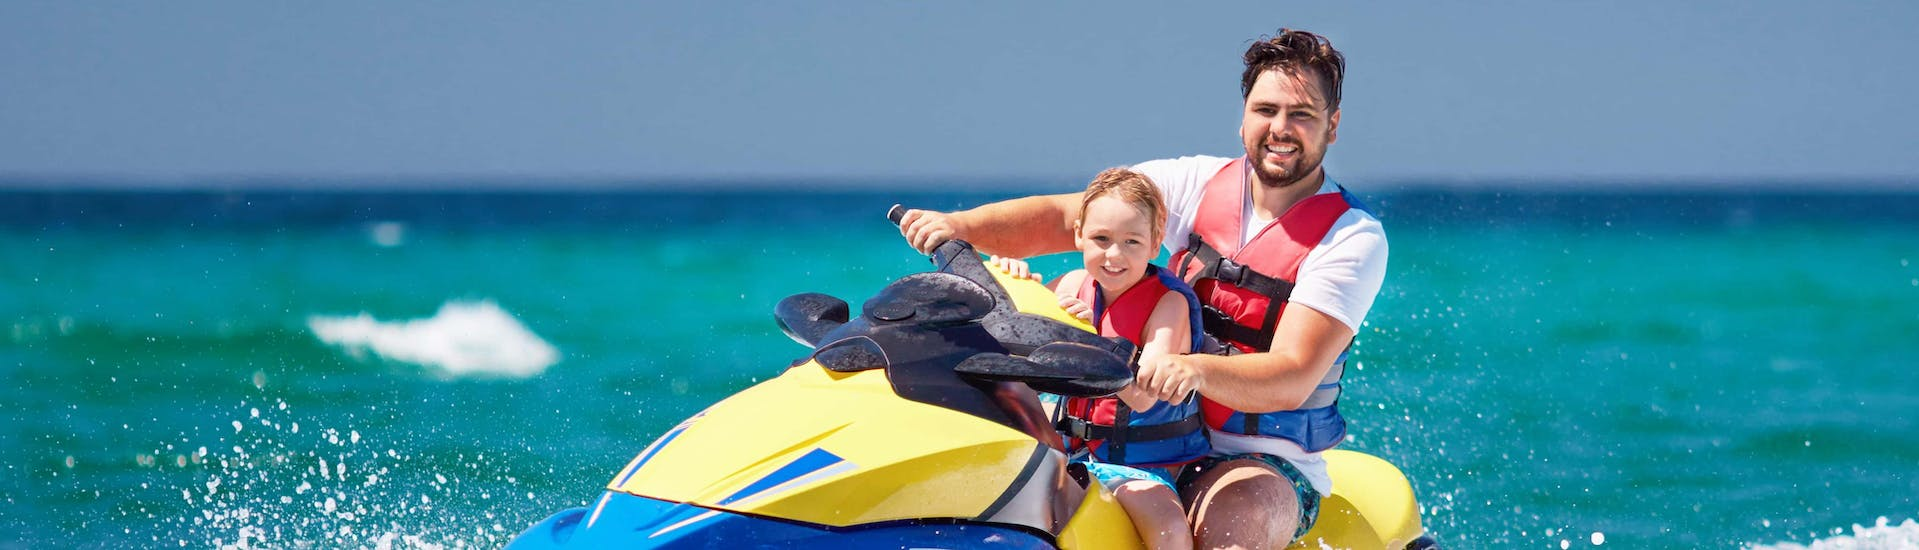 Jet ski & other water sports (c) Shutterstock